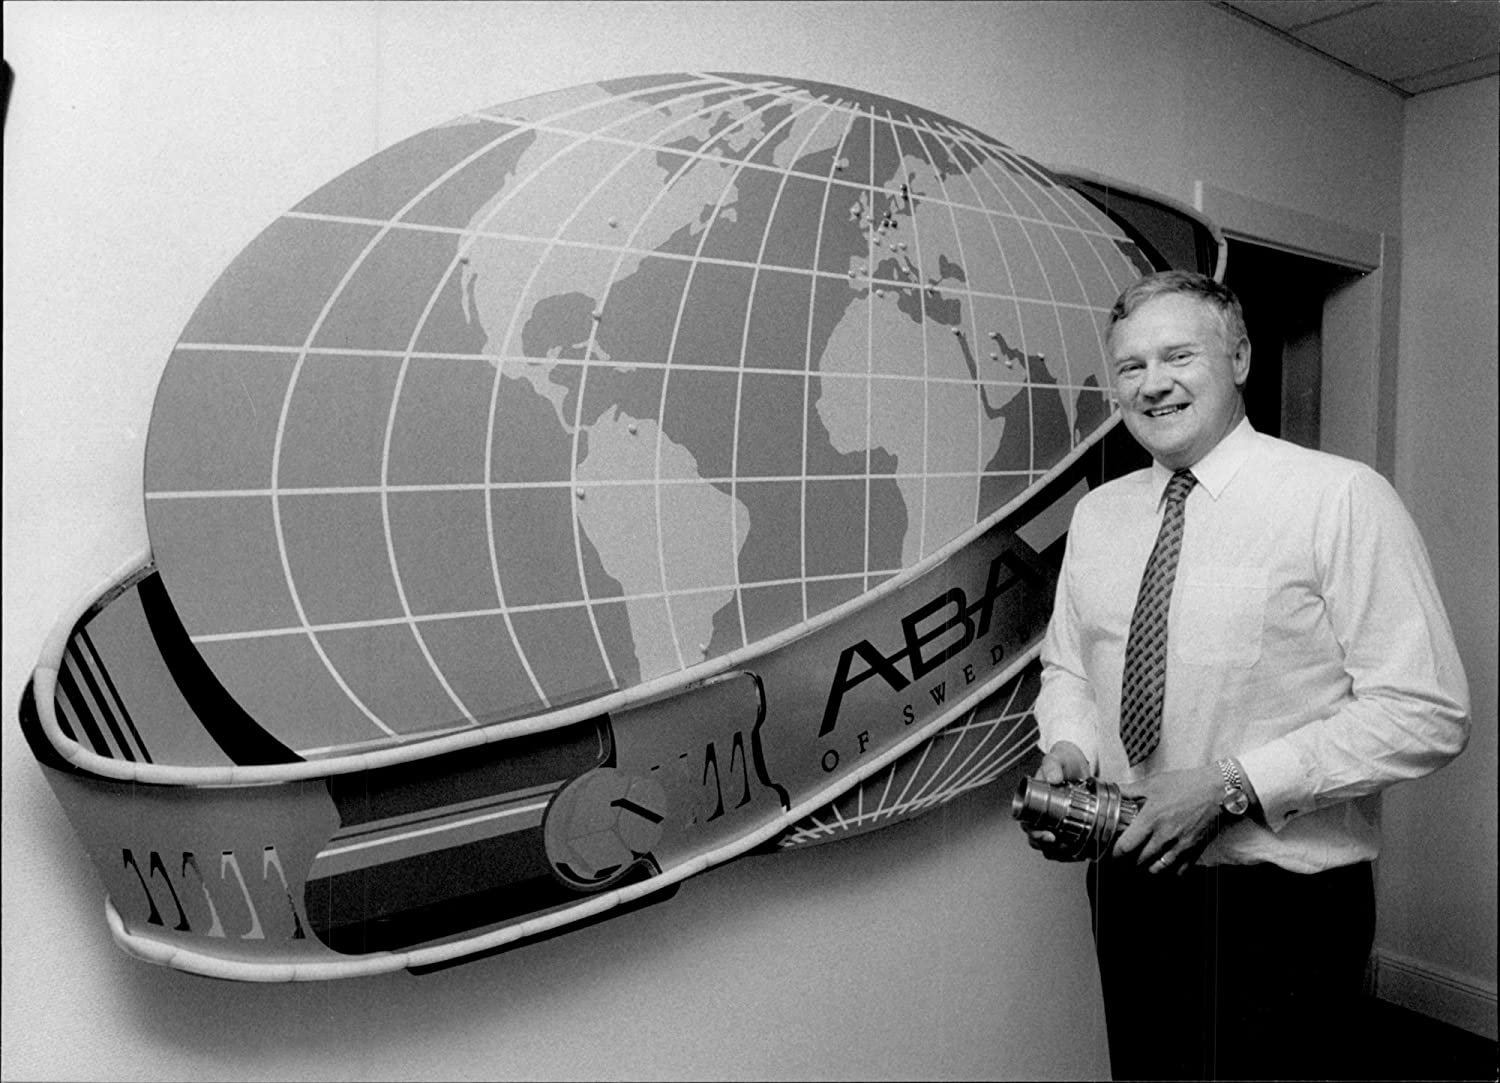 Vintage photo of Nils Bergström, CEO and principal owner of ABA of